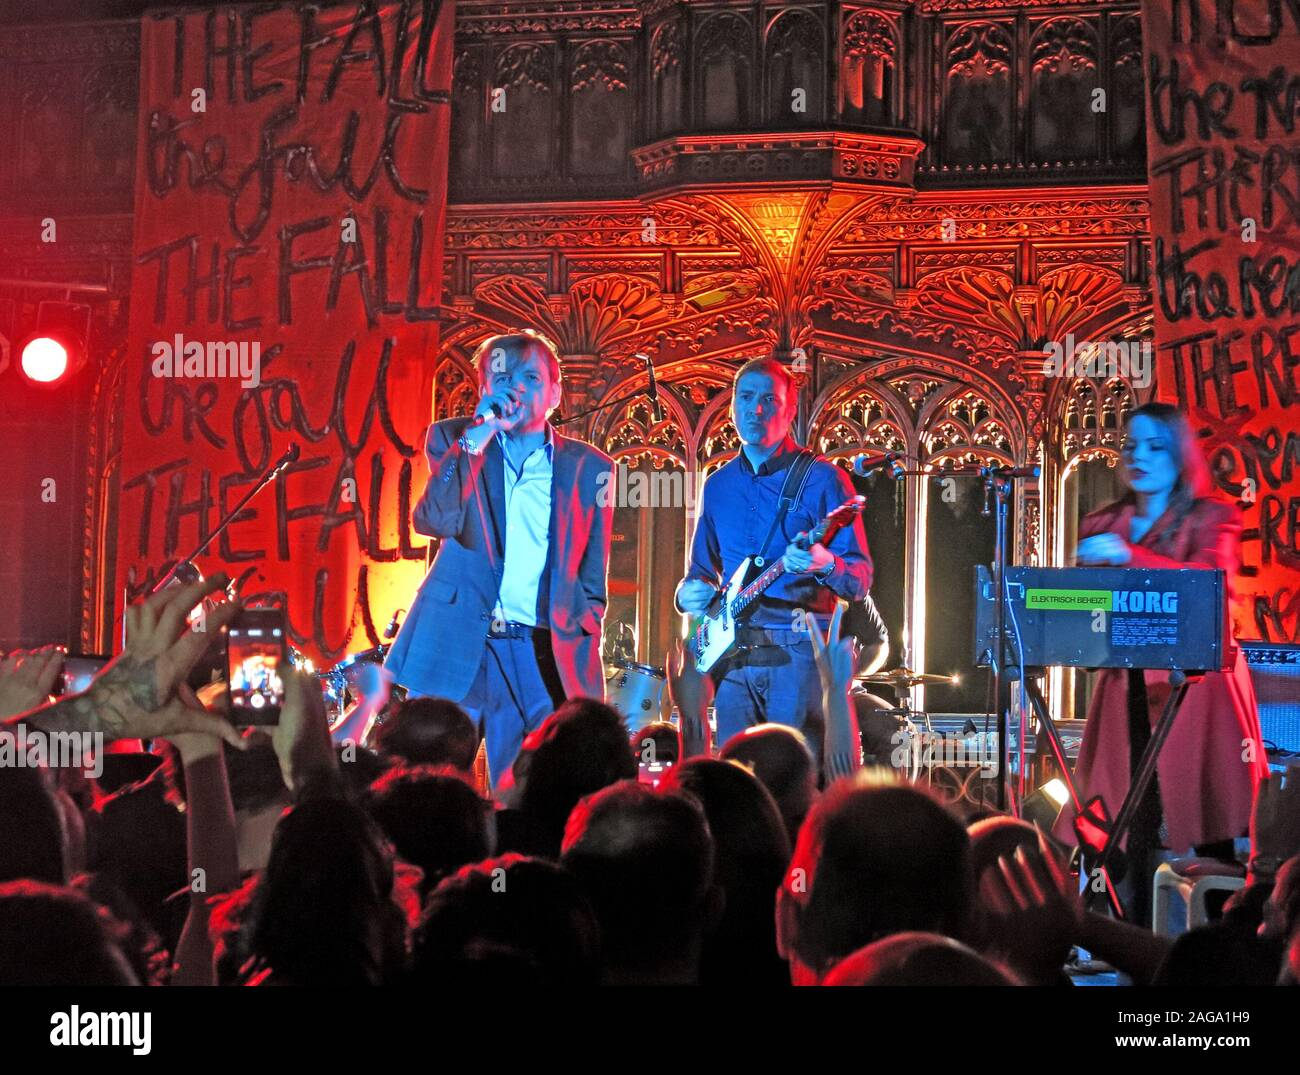 HotpixUK,@HotpixUK,Manchester Cathedral,GoTonySmith,gig,live,tour,2014,on stage,Daren Garratt,Dave Spurr,bass,Elena Poulou,Pete Greenway,guitar,Cathedral and Collegiate Church of St Mary,St Denys and St George,TheFallMancCath15-05-2014,Mark E Smith and The Fall perform live,Mark E Smith and The Fall,perform,performing,15th May 2014,The Fall 2014,MarkESmith,Mark.E.Smith,post-punk,band,group,Prestwich,cult,Mark E Smith of The Fall,Manchester Legend,1957-2018,Manchester artist,Manchester musician